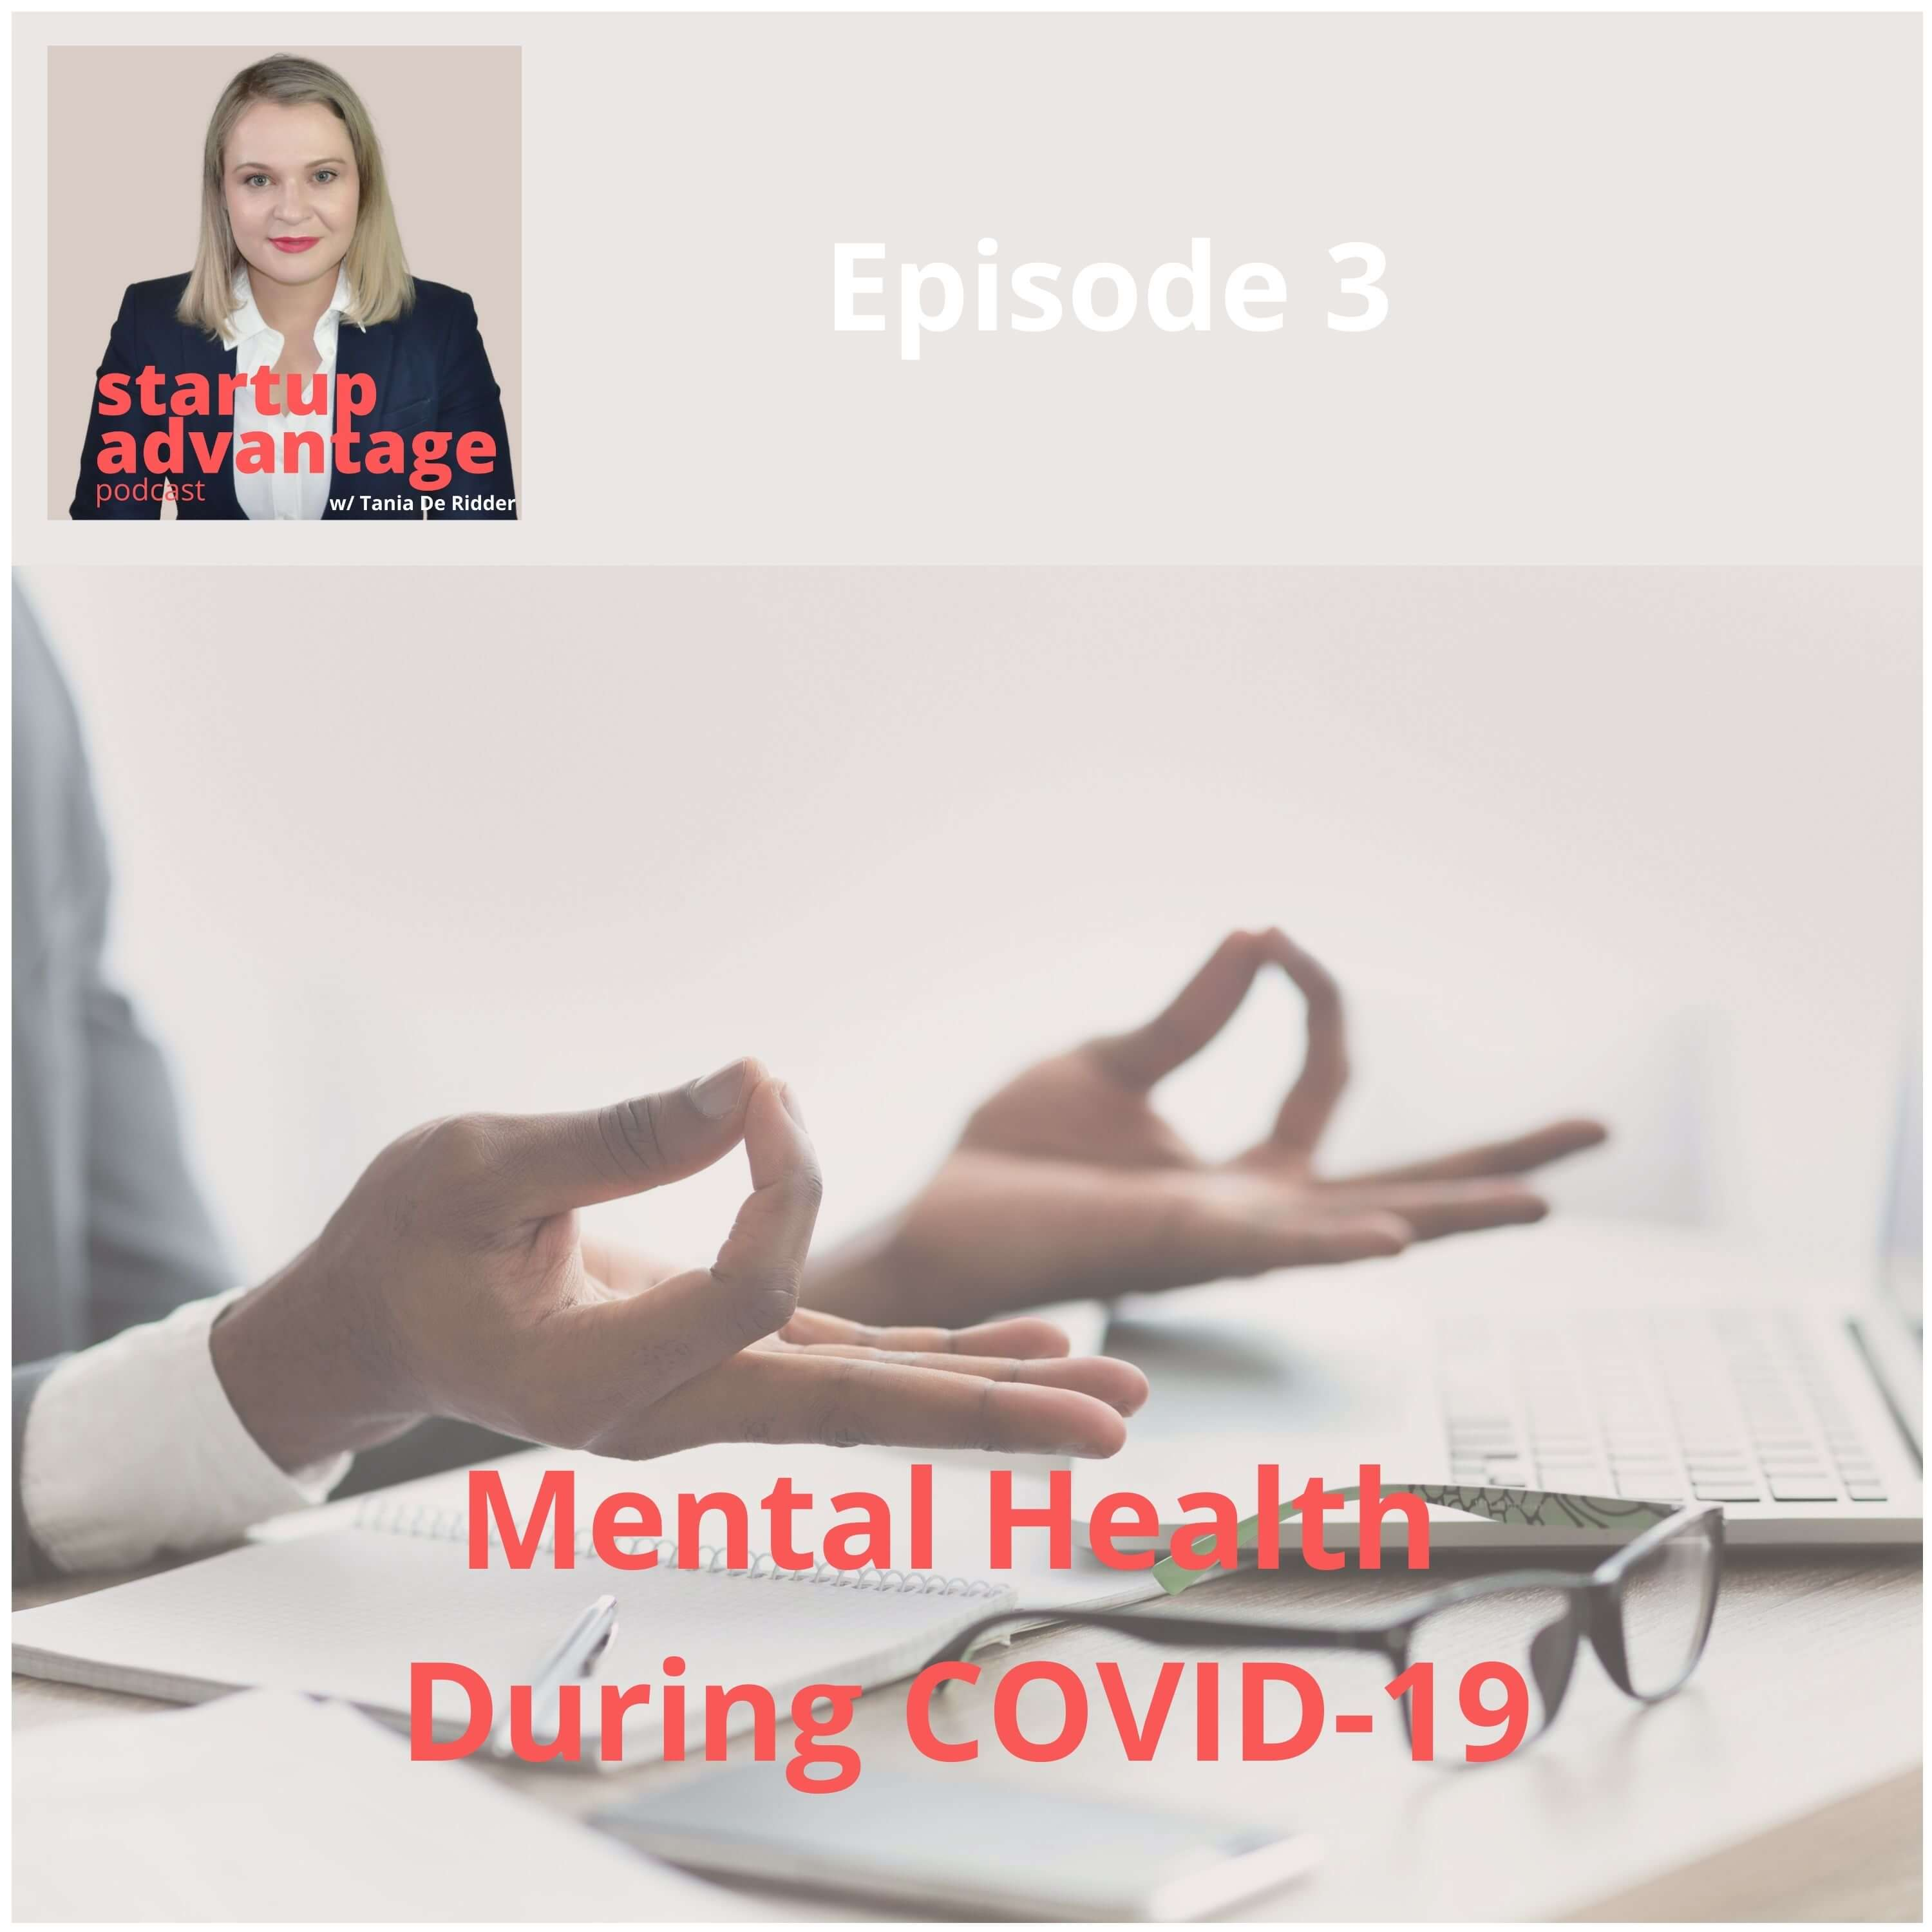 Mental Health During COVID-19 & 4 Steps You Can Take to Deal with Negative Emotions in Healthy Ways